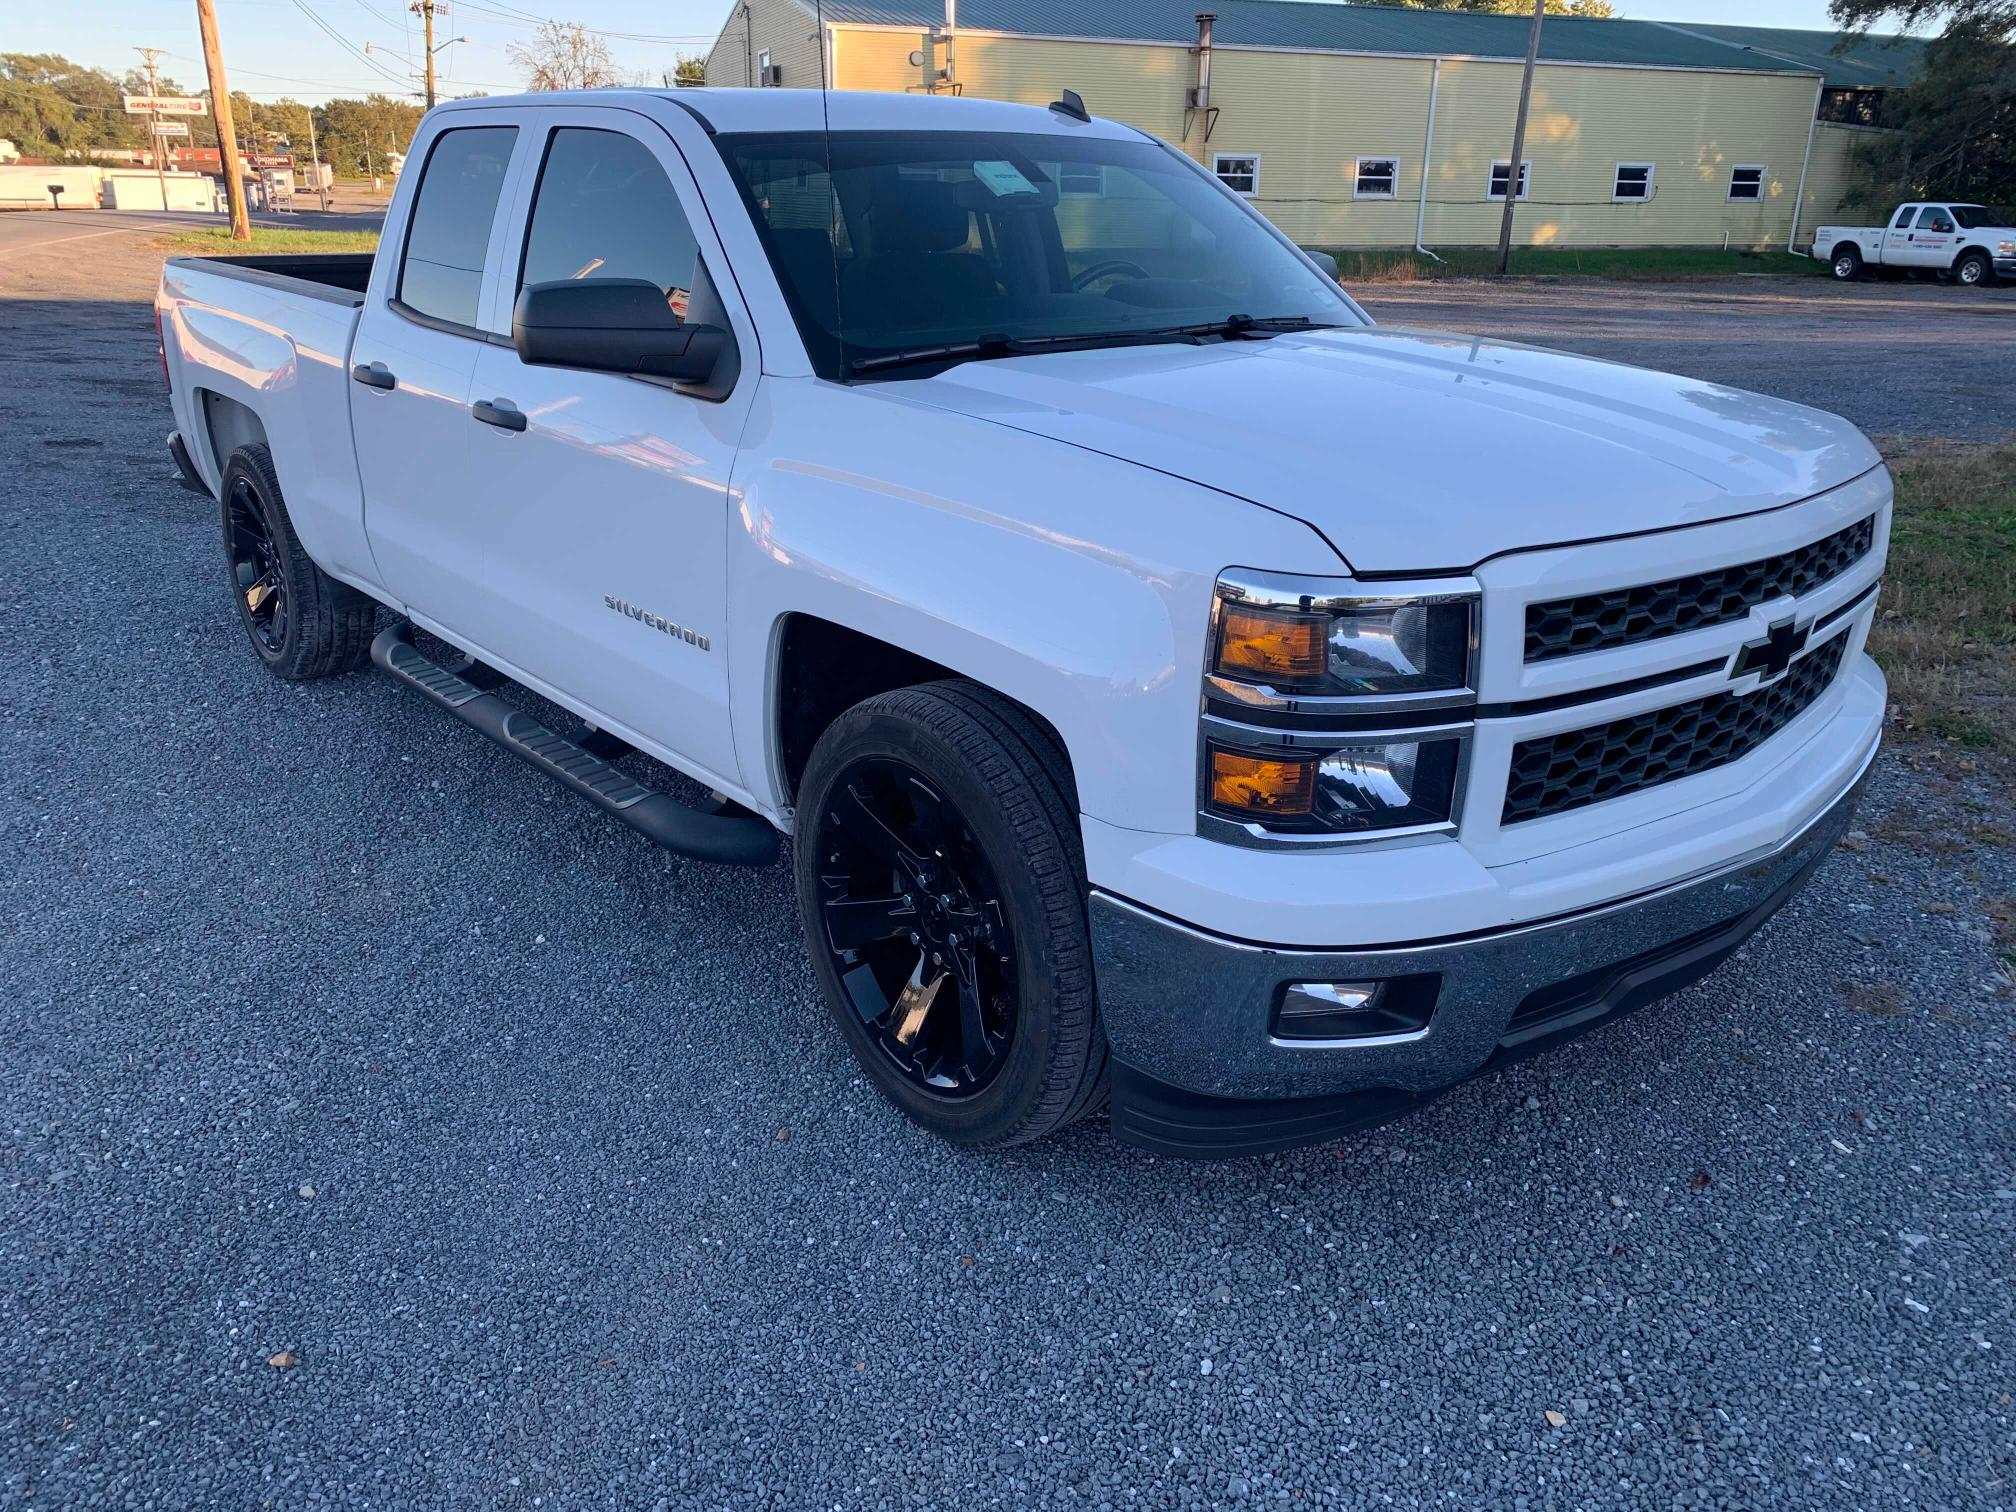 Salvage cars for sale from Copart Sandston, VA: 2014 Chevrolet Silverado